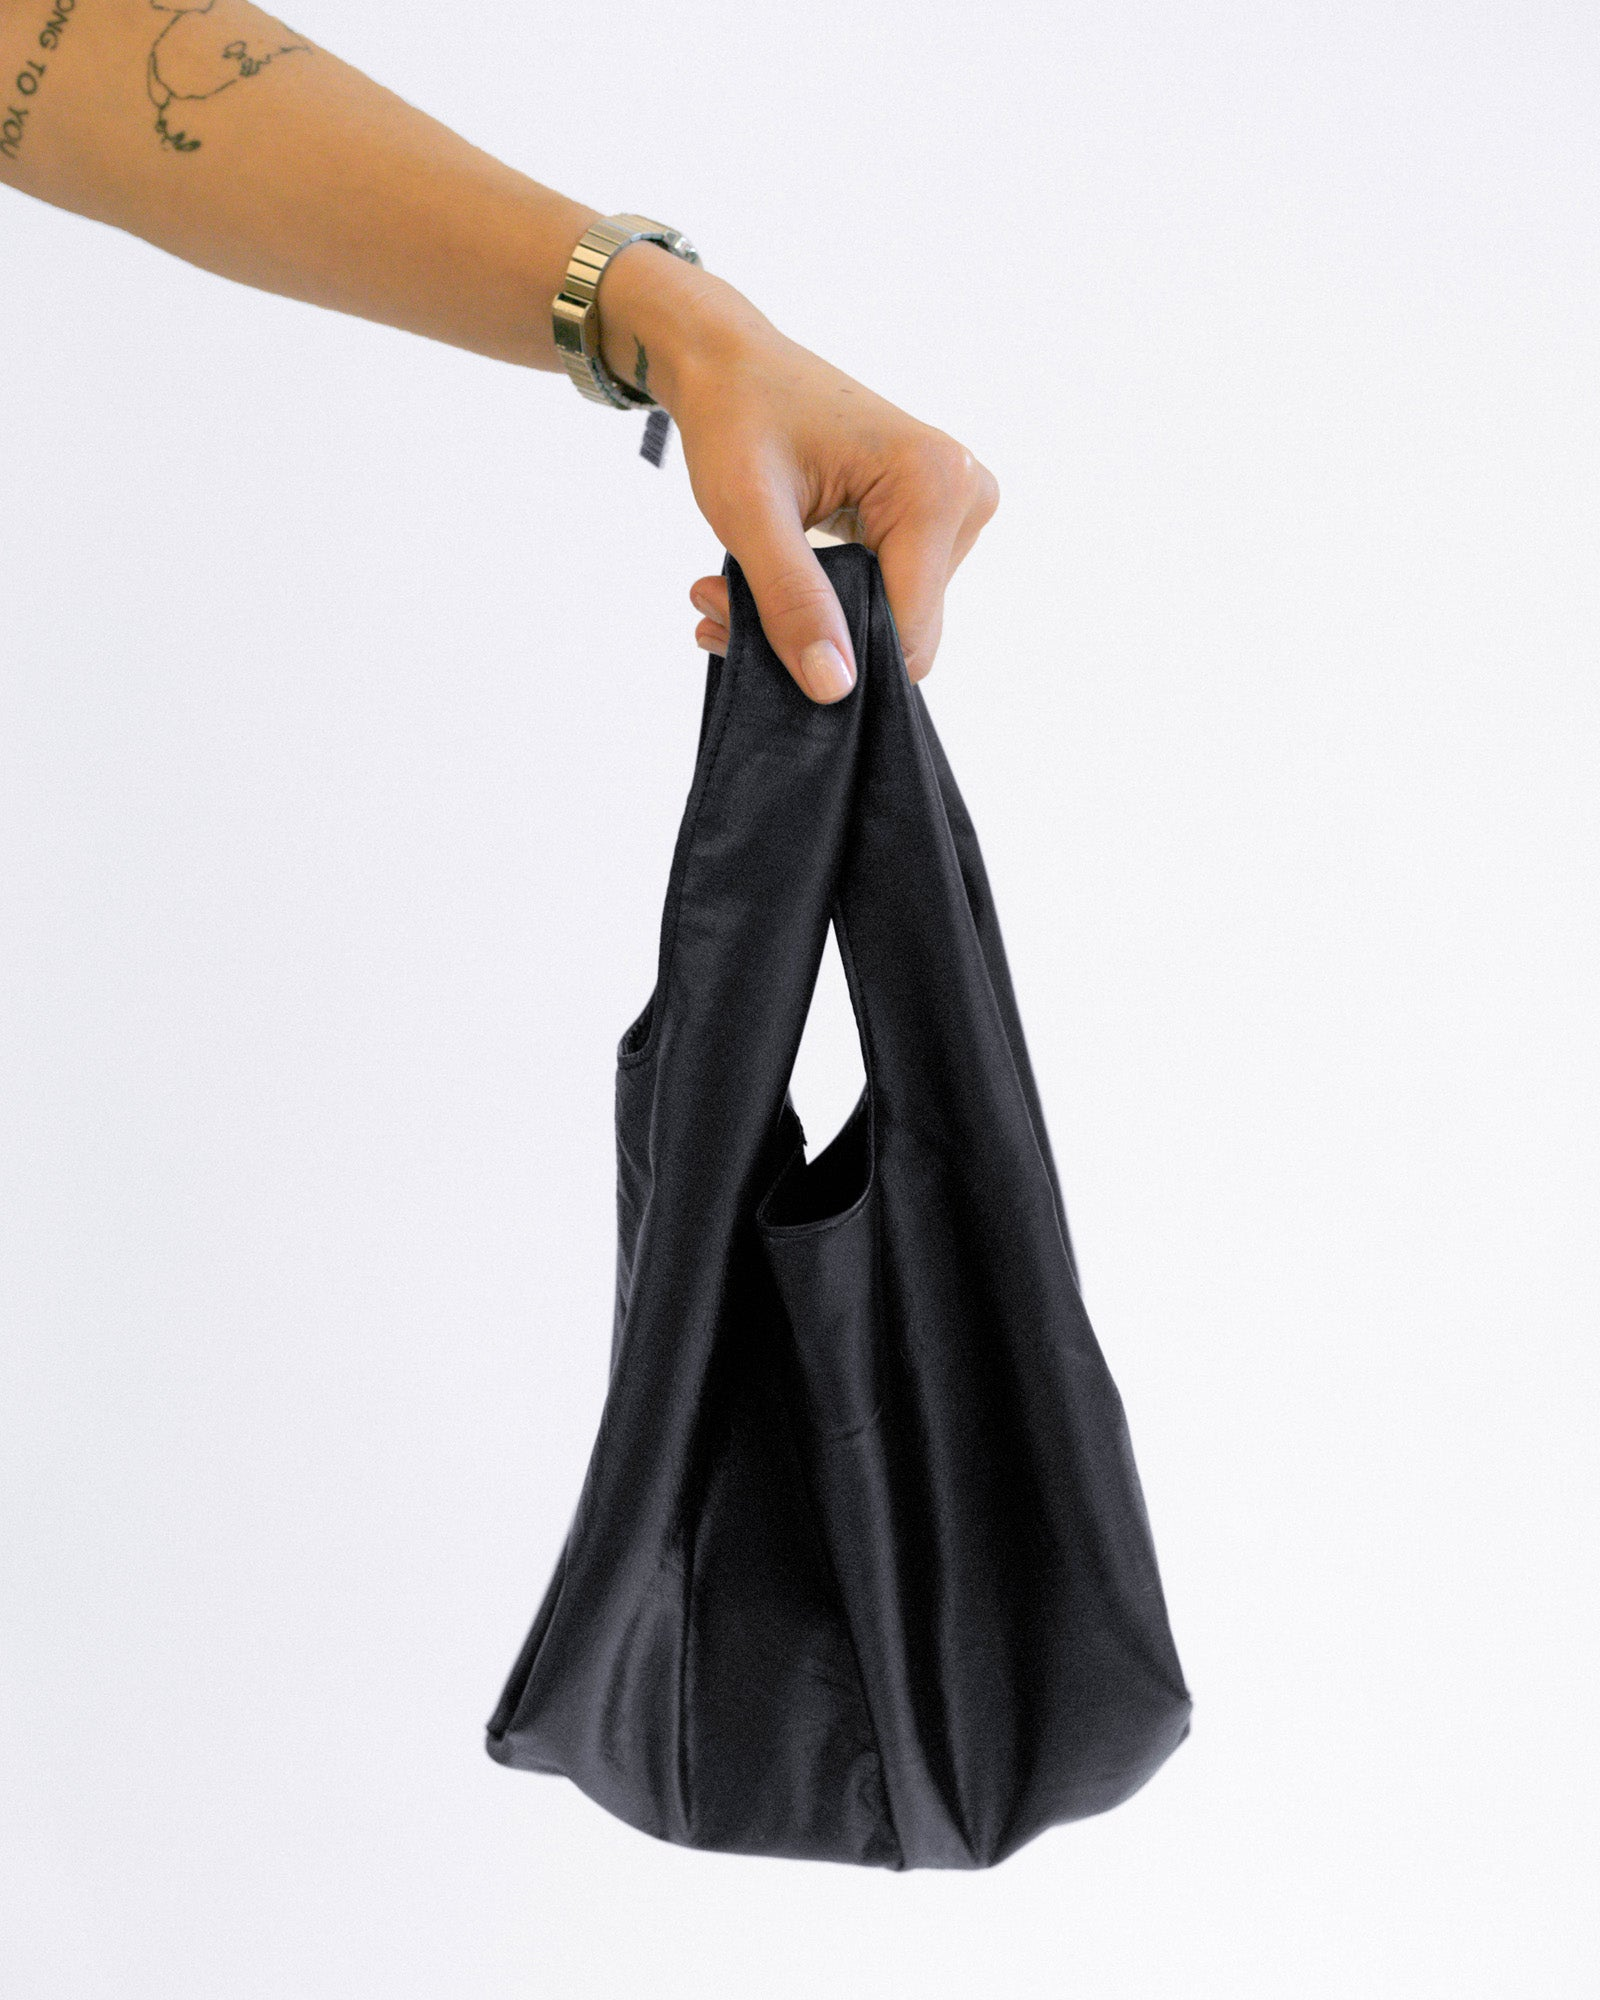 NOT SO PLASTIC BAG - Small Black Plonge Leather Tote